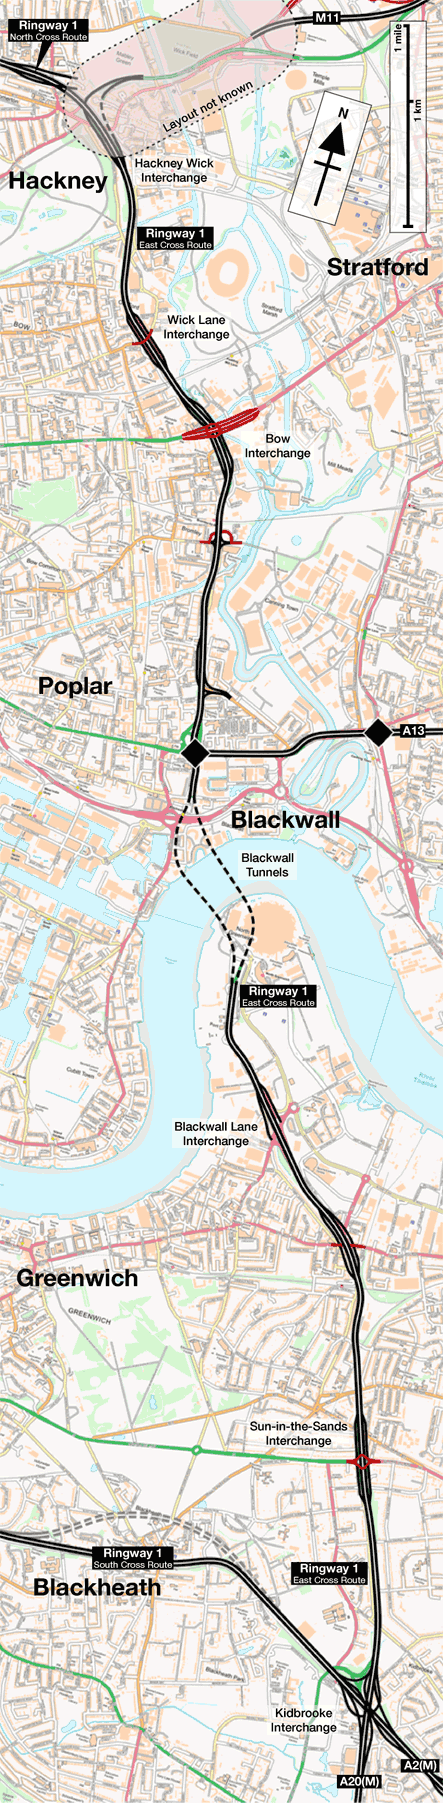 Ringway 1 East Cross Route map